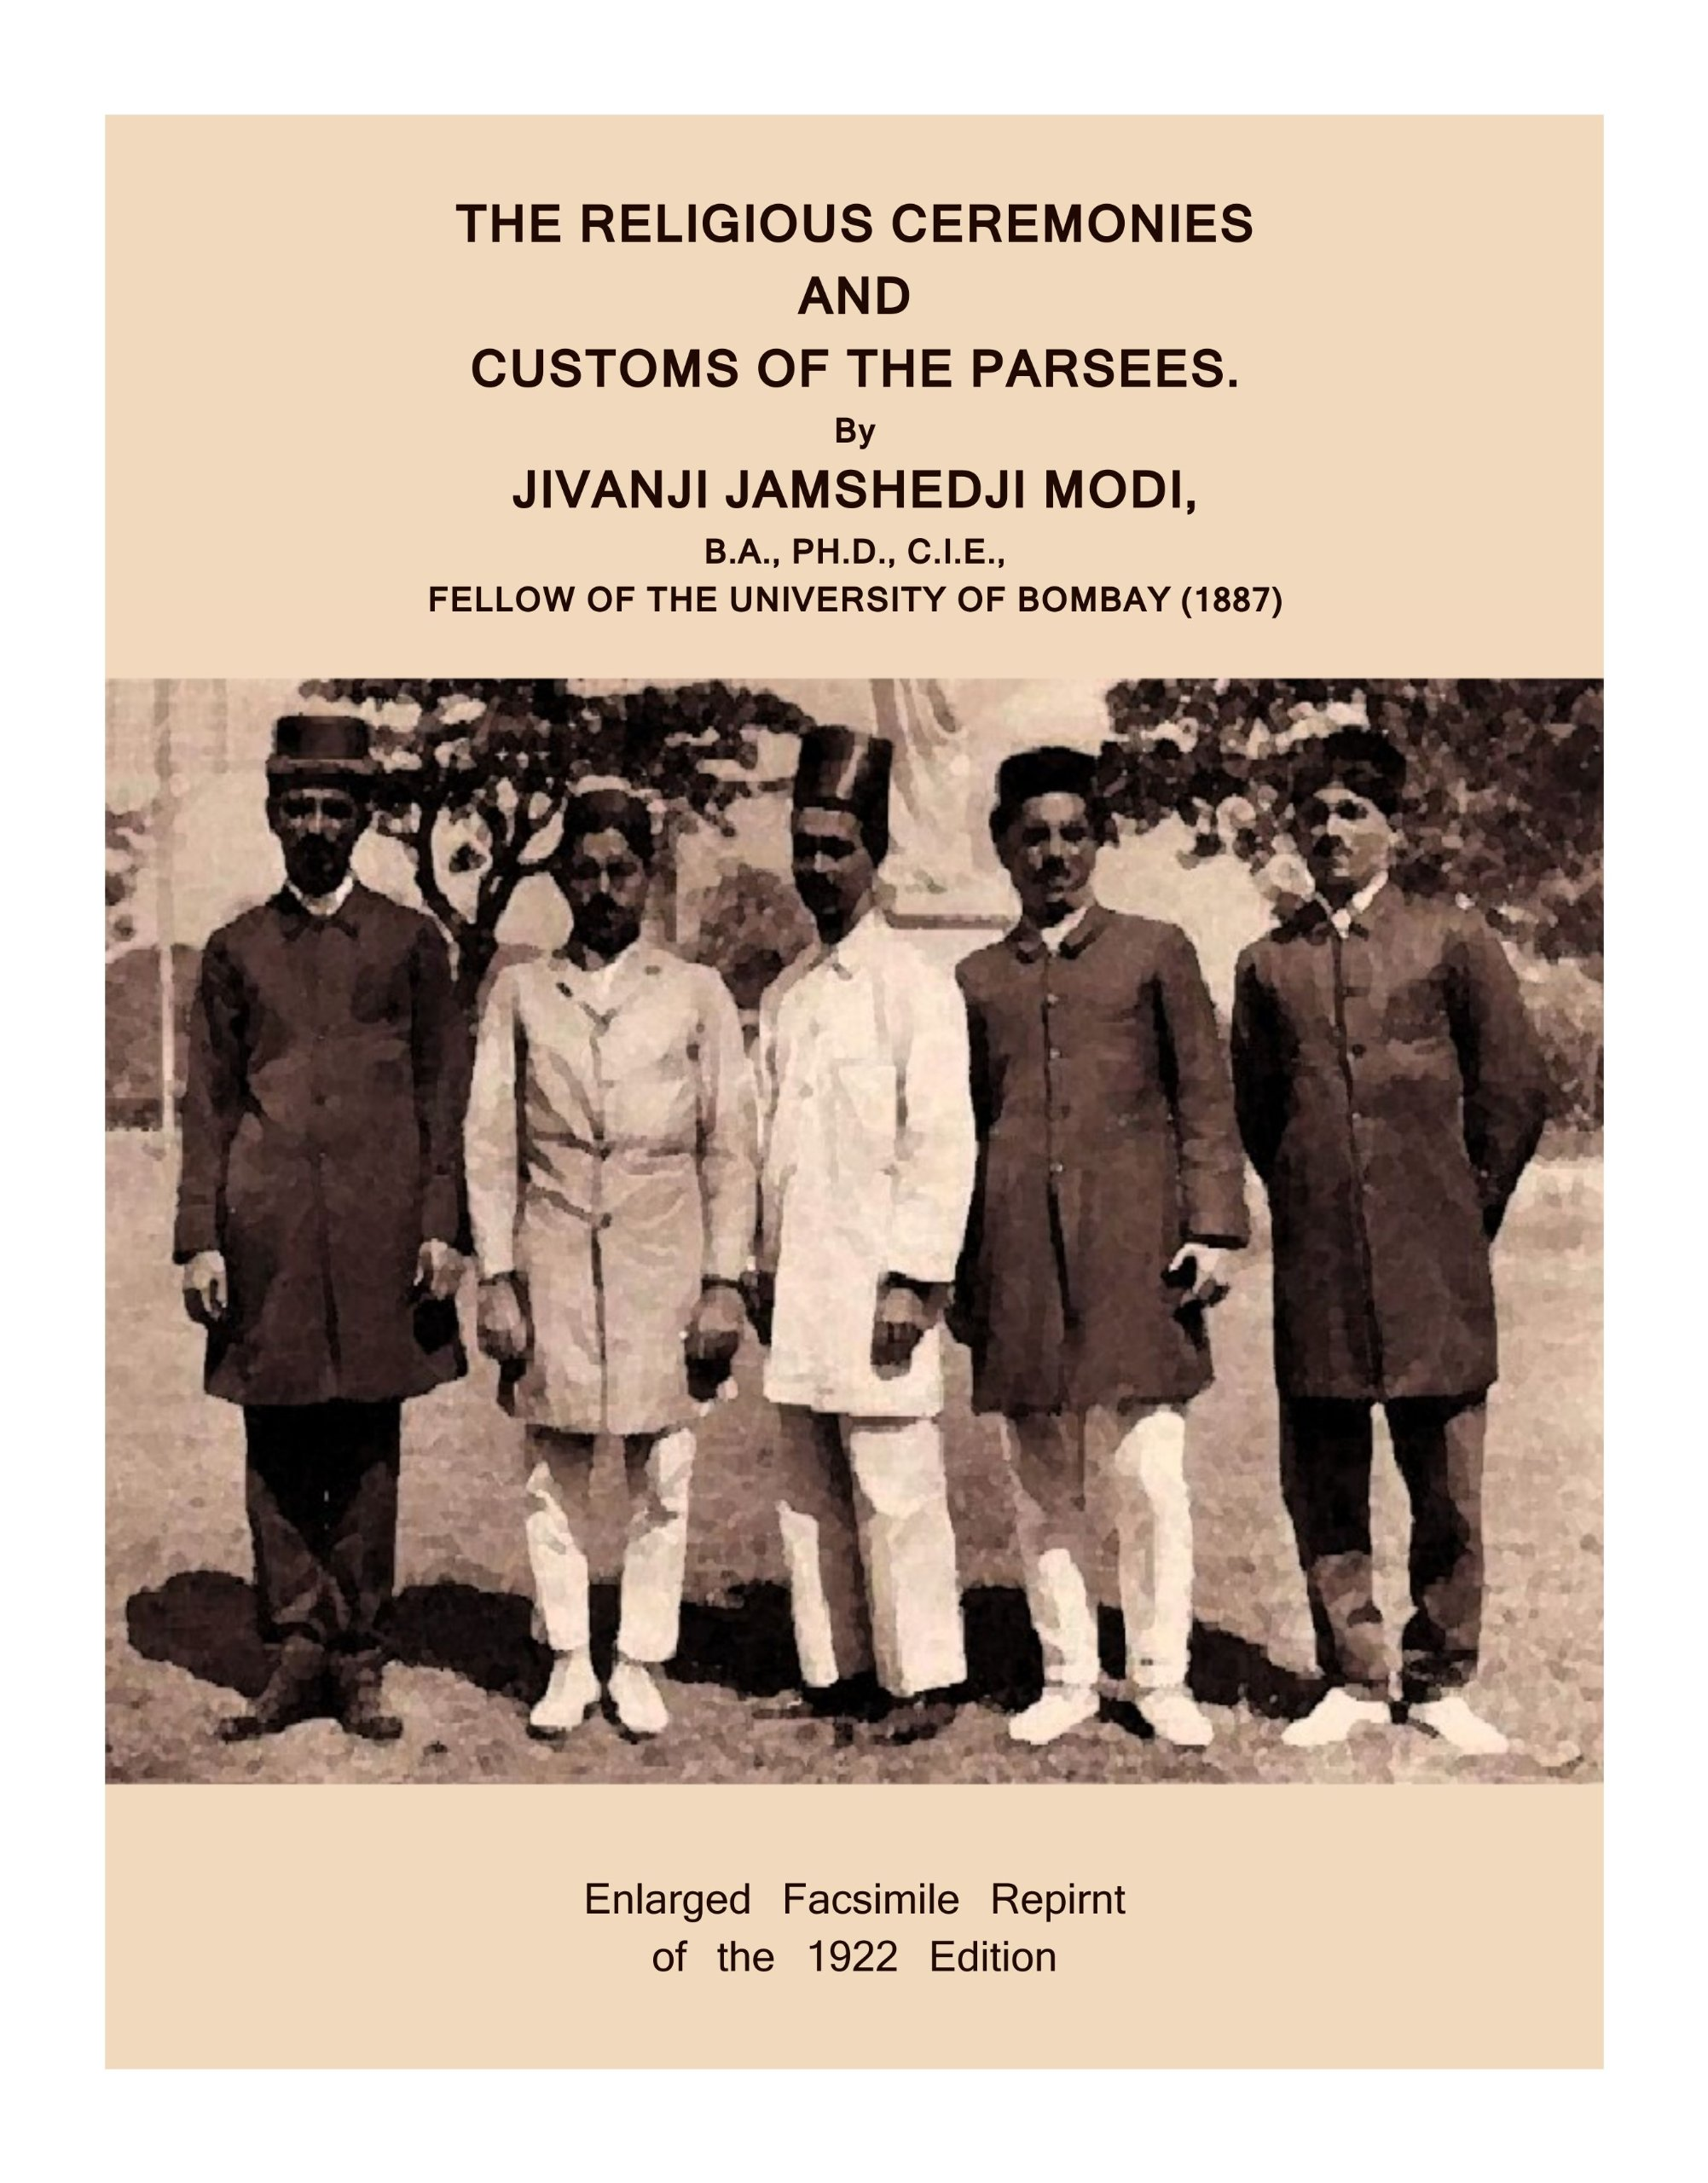 The religious ceremonies and customs of the Parsees: By JIVANJI JAMSHEDJI MODI, B.A., PH.D., C.I.E., FELLOW OF THE UNIVERSITY OF BOMBAY [Loose Leaf Reprint of the 1920 Edition. Not a Facsimile] pdf epub